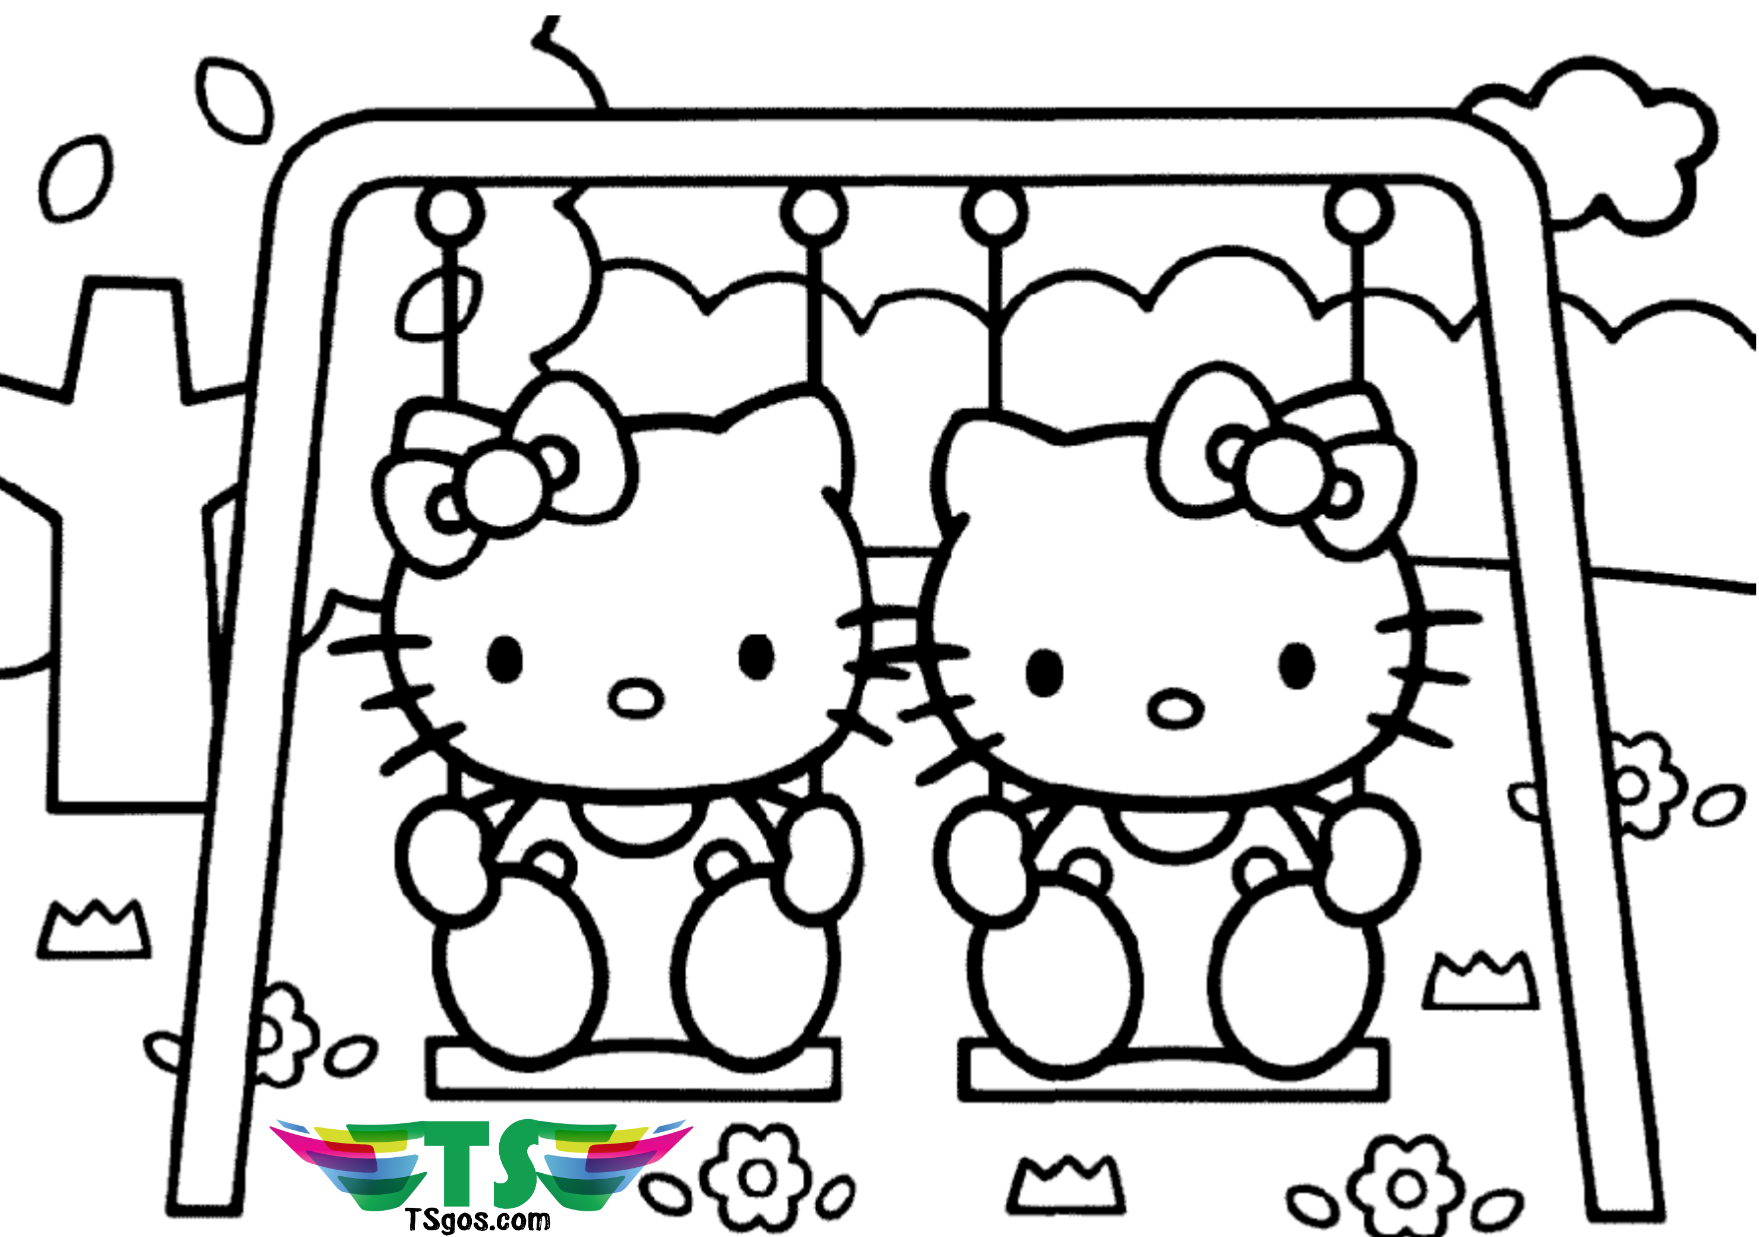 happy friendship day coloring pages hello kitty best friend coloring page tsgoscom coloring pages day friendship happy